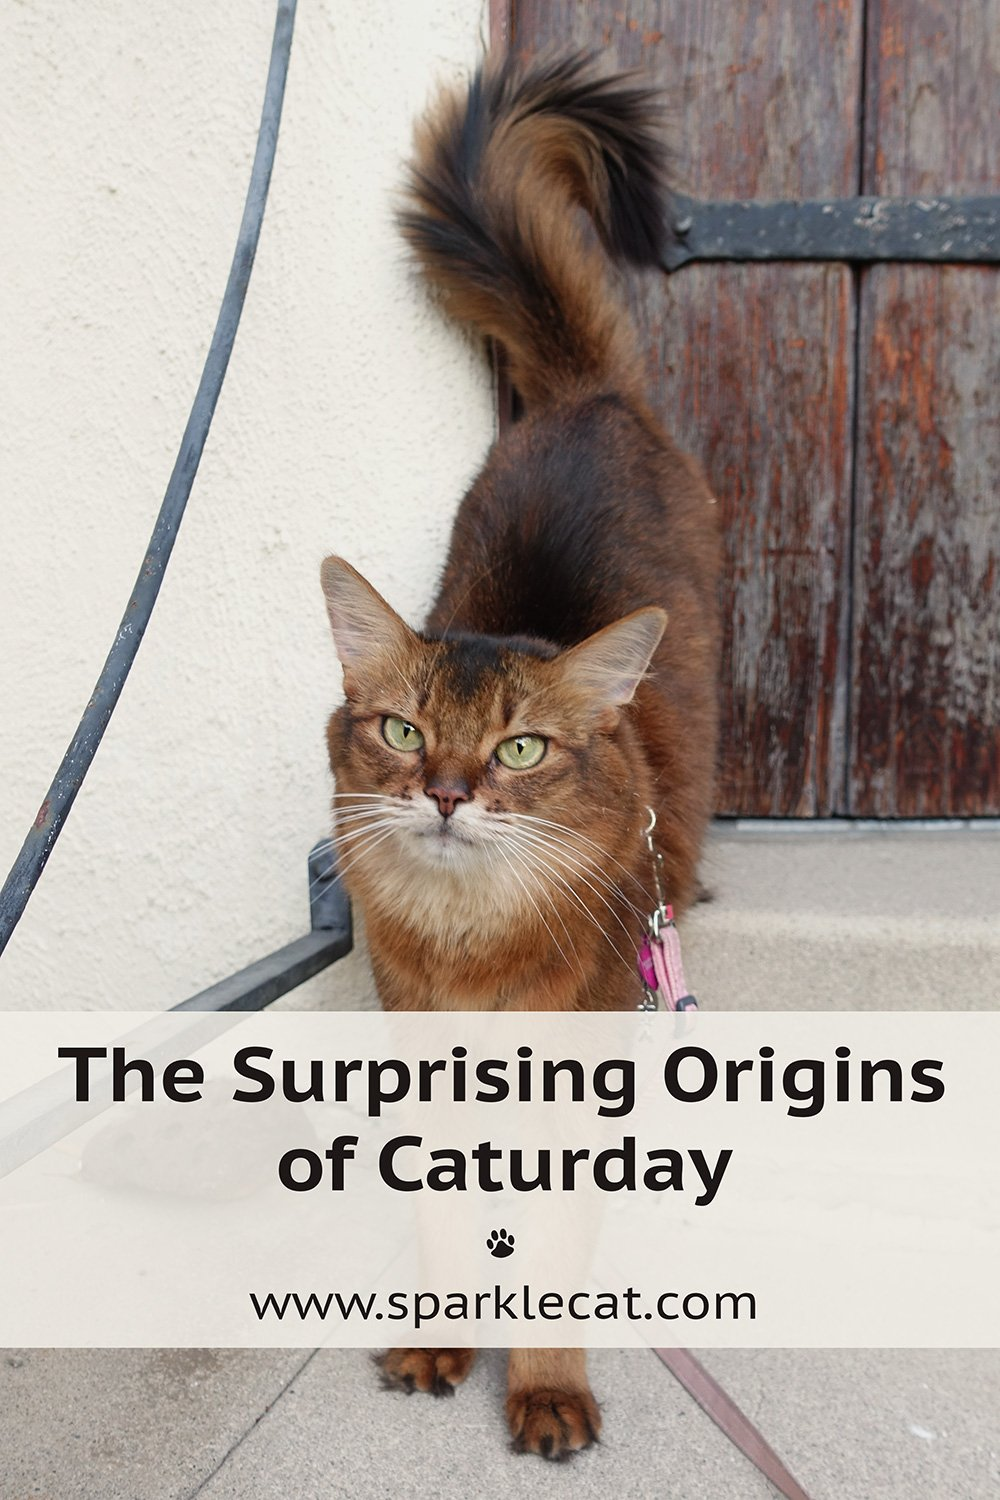 5 Fast Facts About the Origins of Caturday